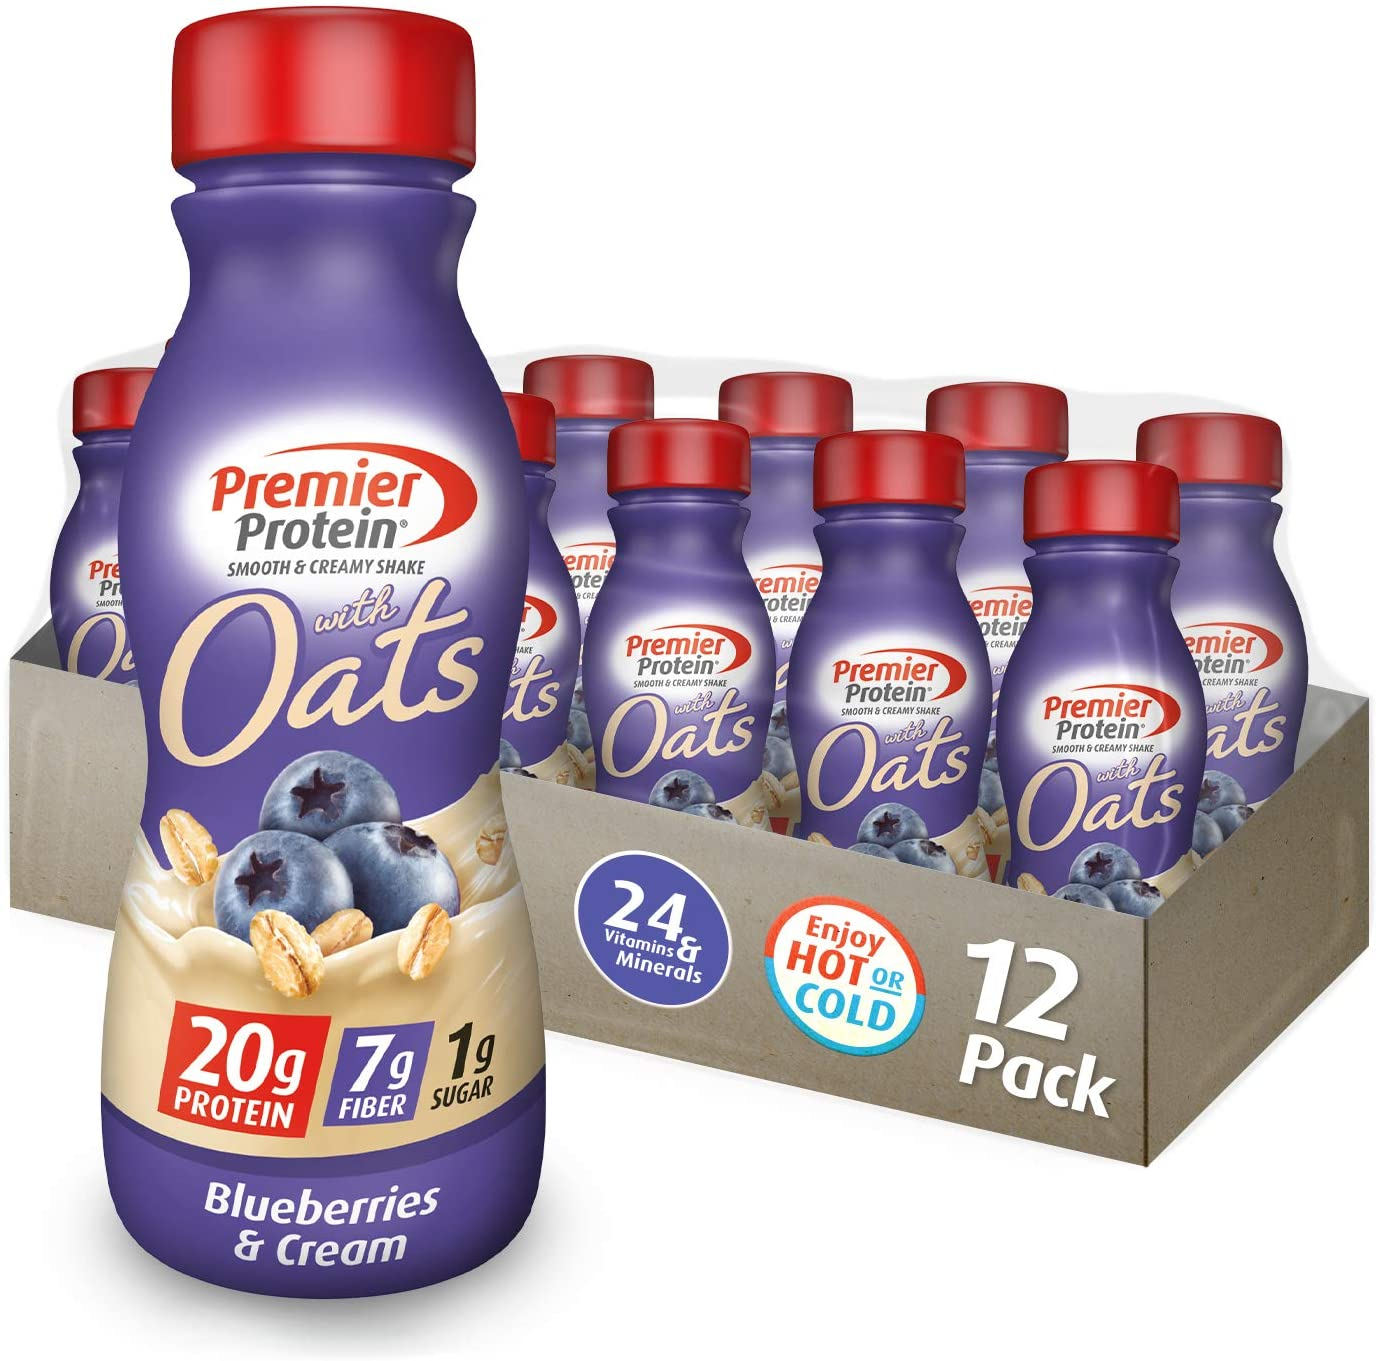 Premier Protein 20g Protein Shake with Oats, Blueberries and Cream - 12'li Paket